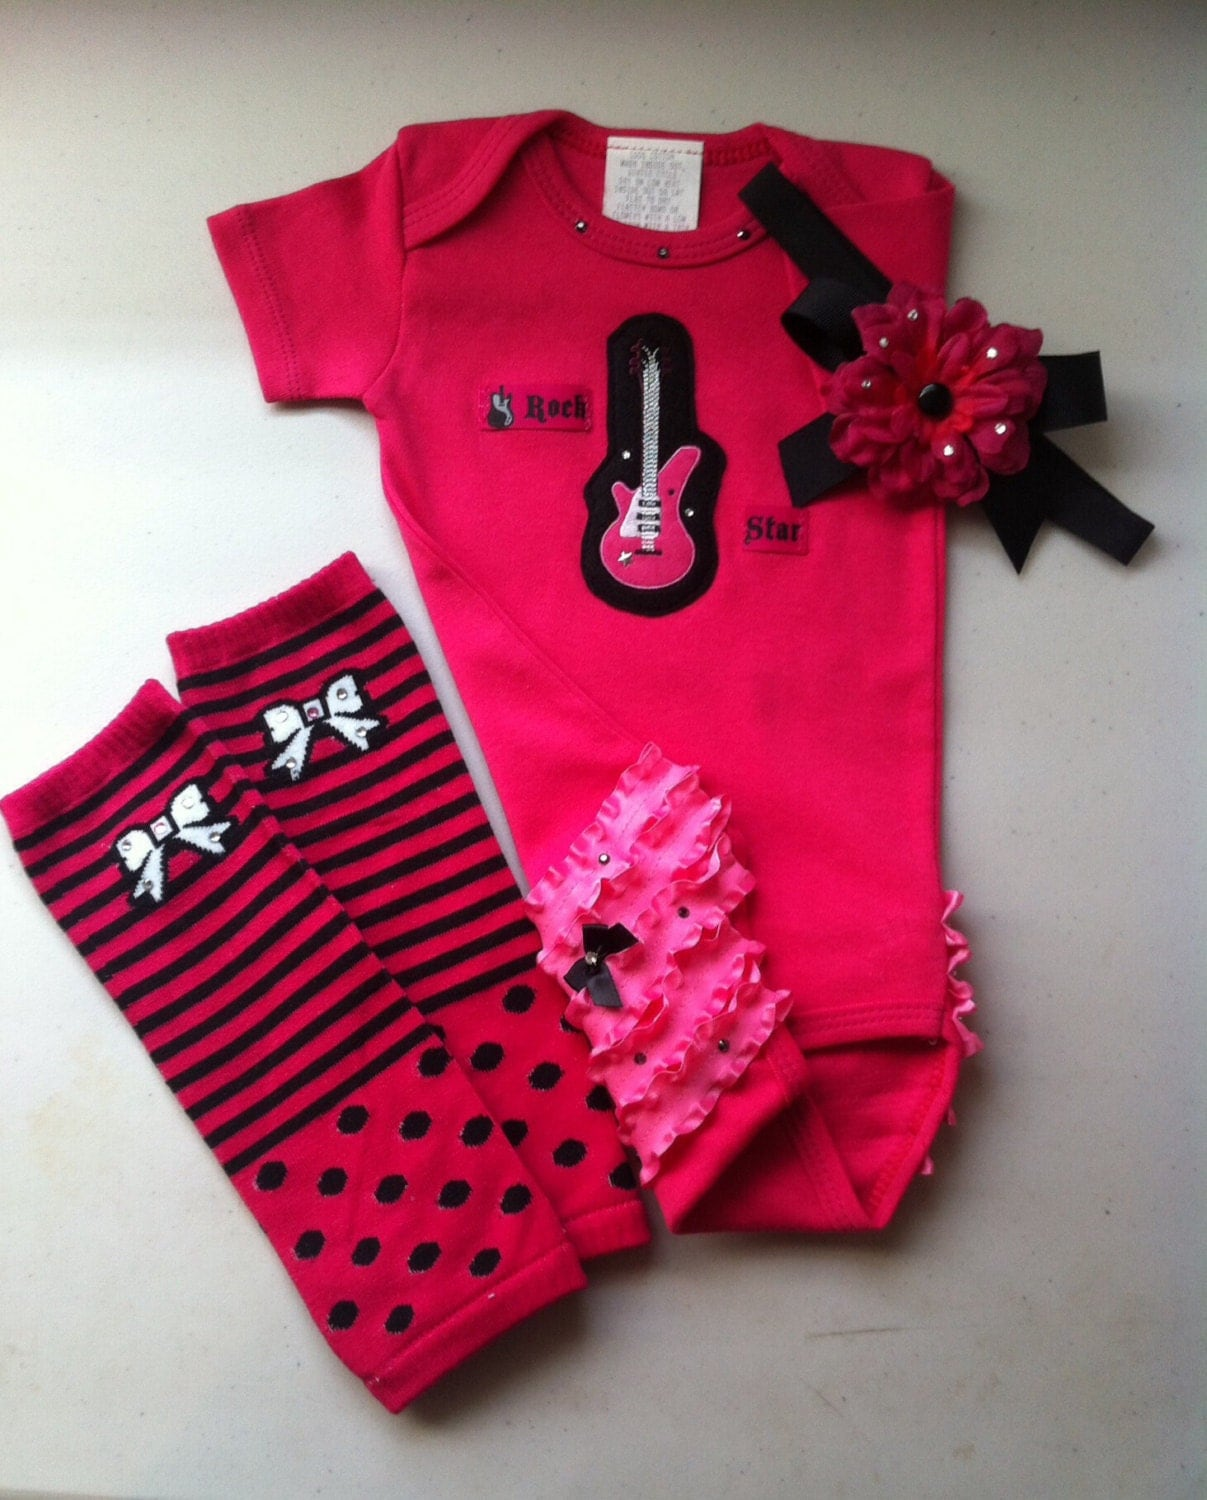 Shop for a wide variety of Texas Long Horn baby clothes, jerseys and infant apparel. Same day shipping and all Texas baby gifts are wrapped in team color tissue paper to .